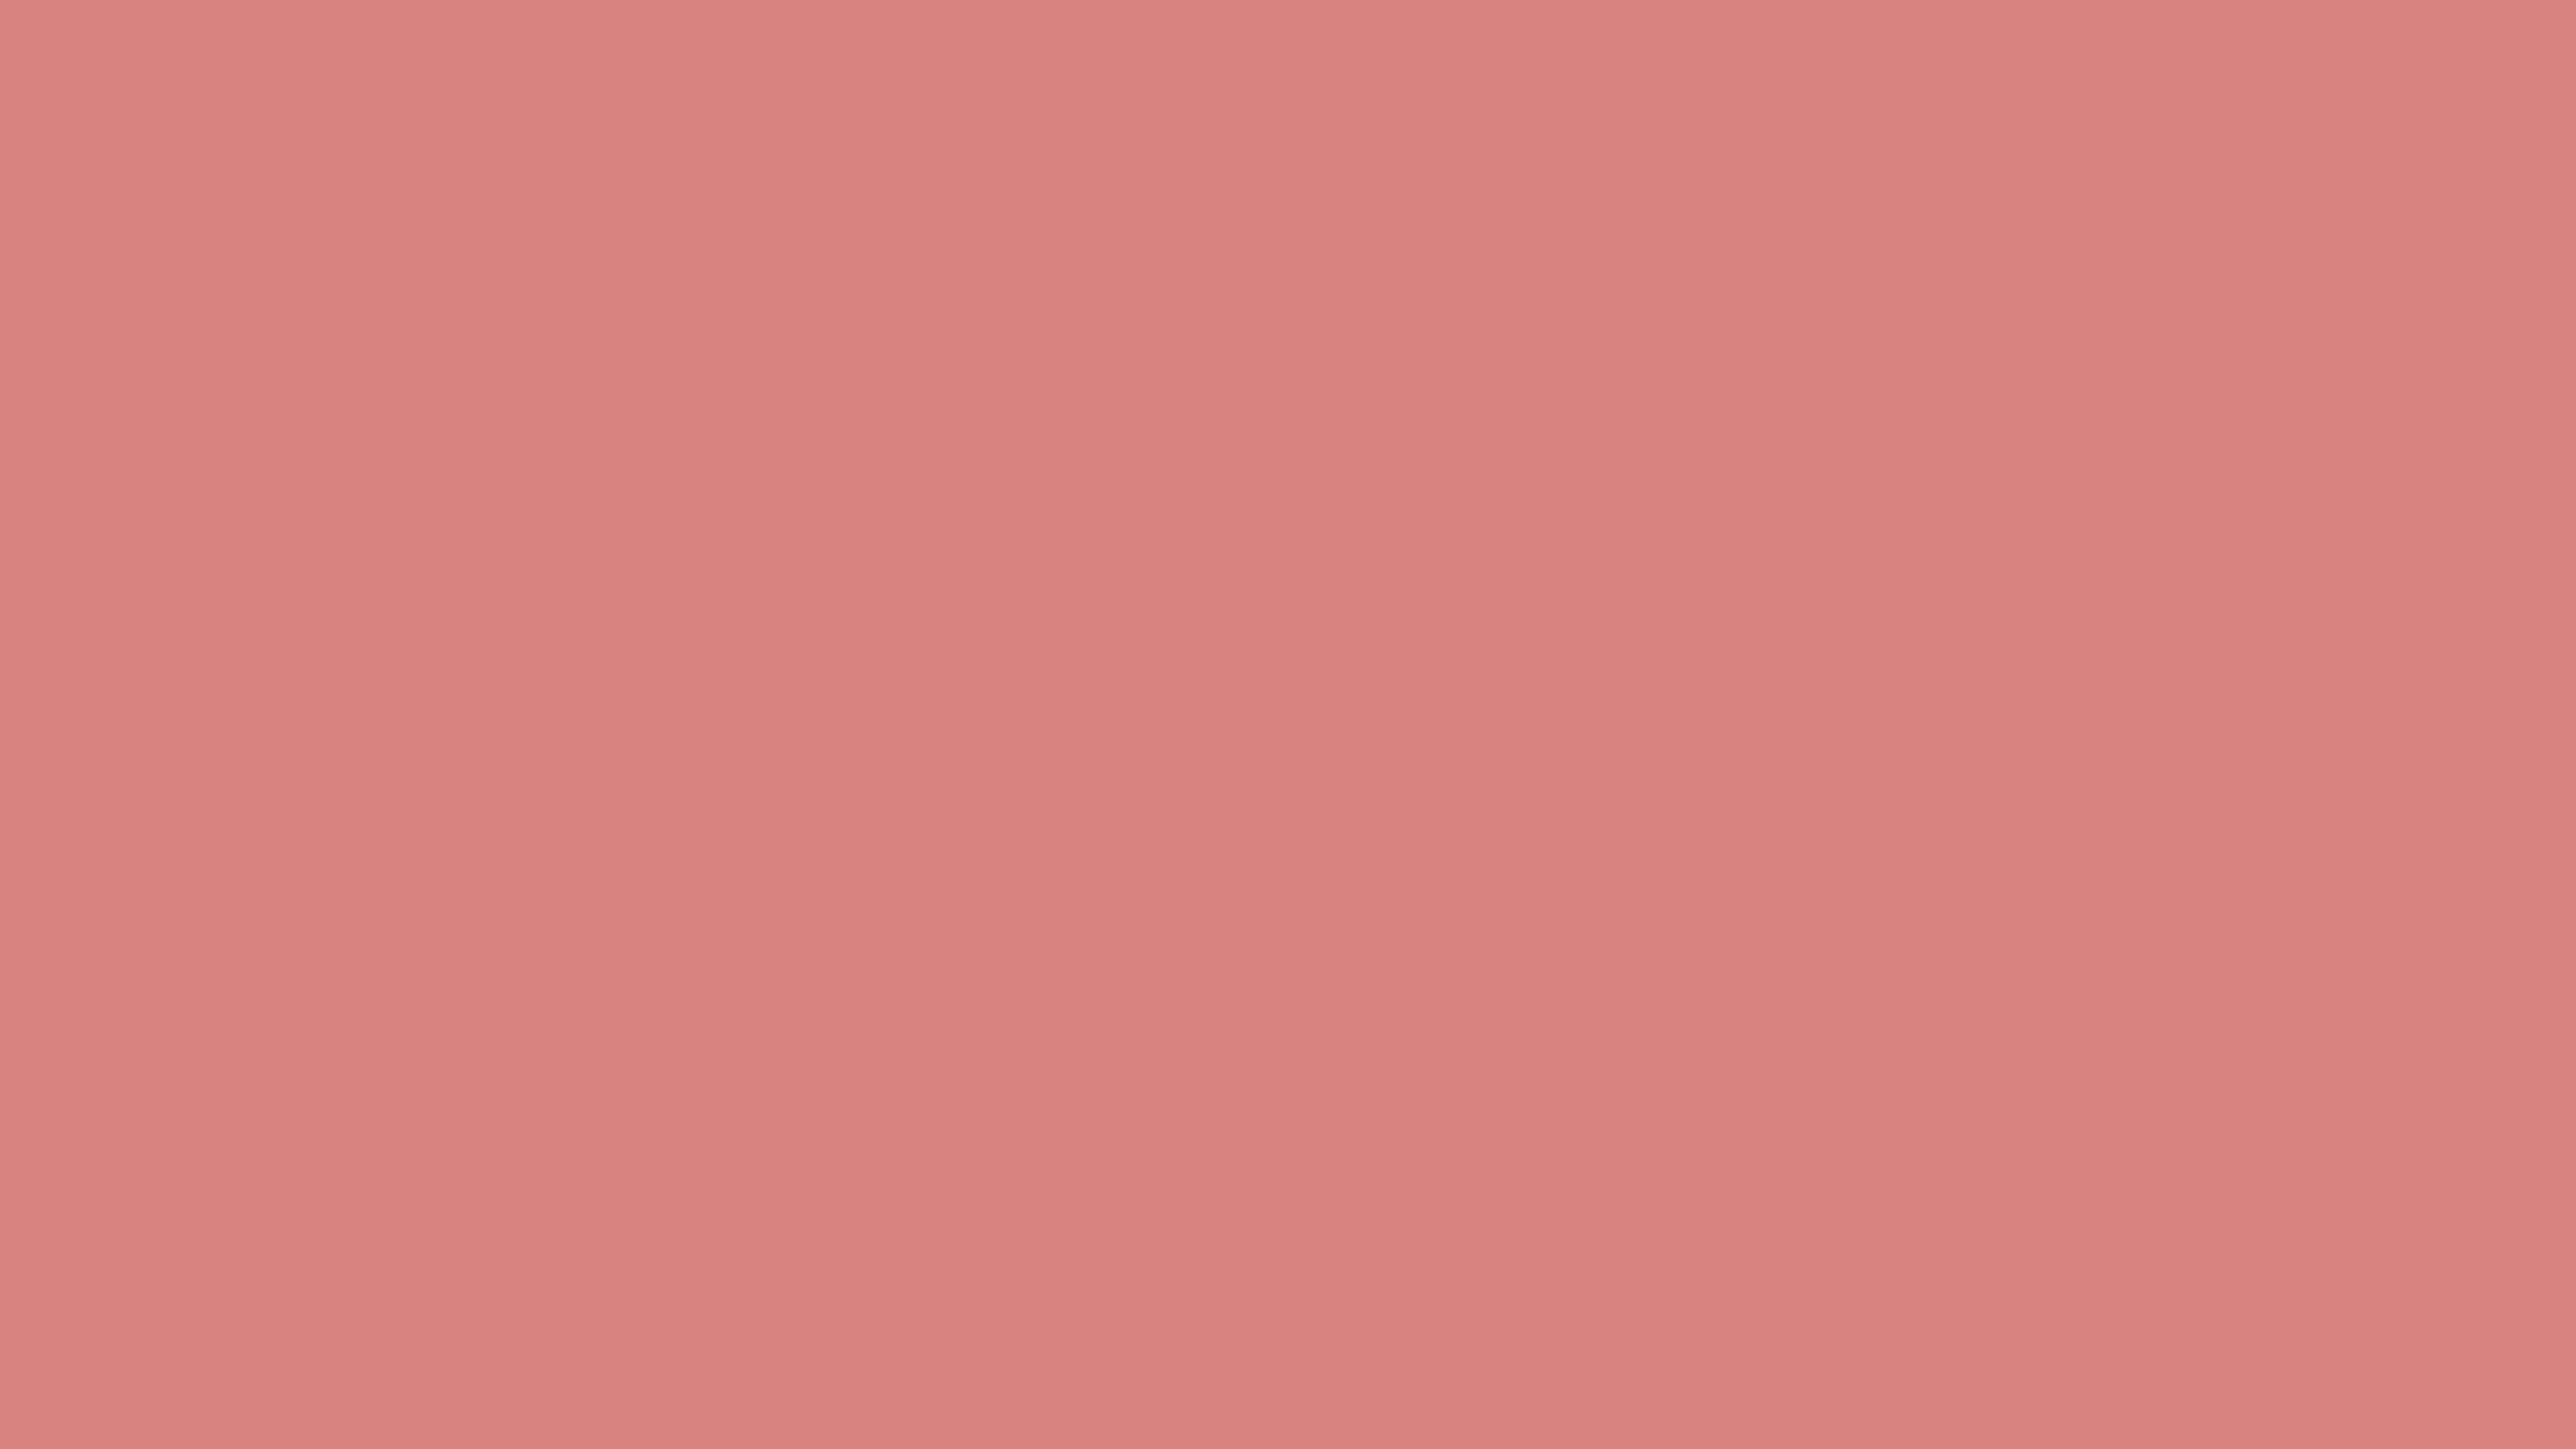 4096x2304 New York Pink Solid Color Background